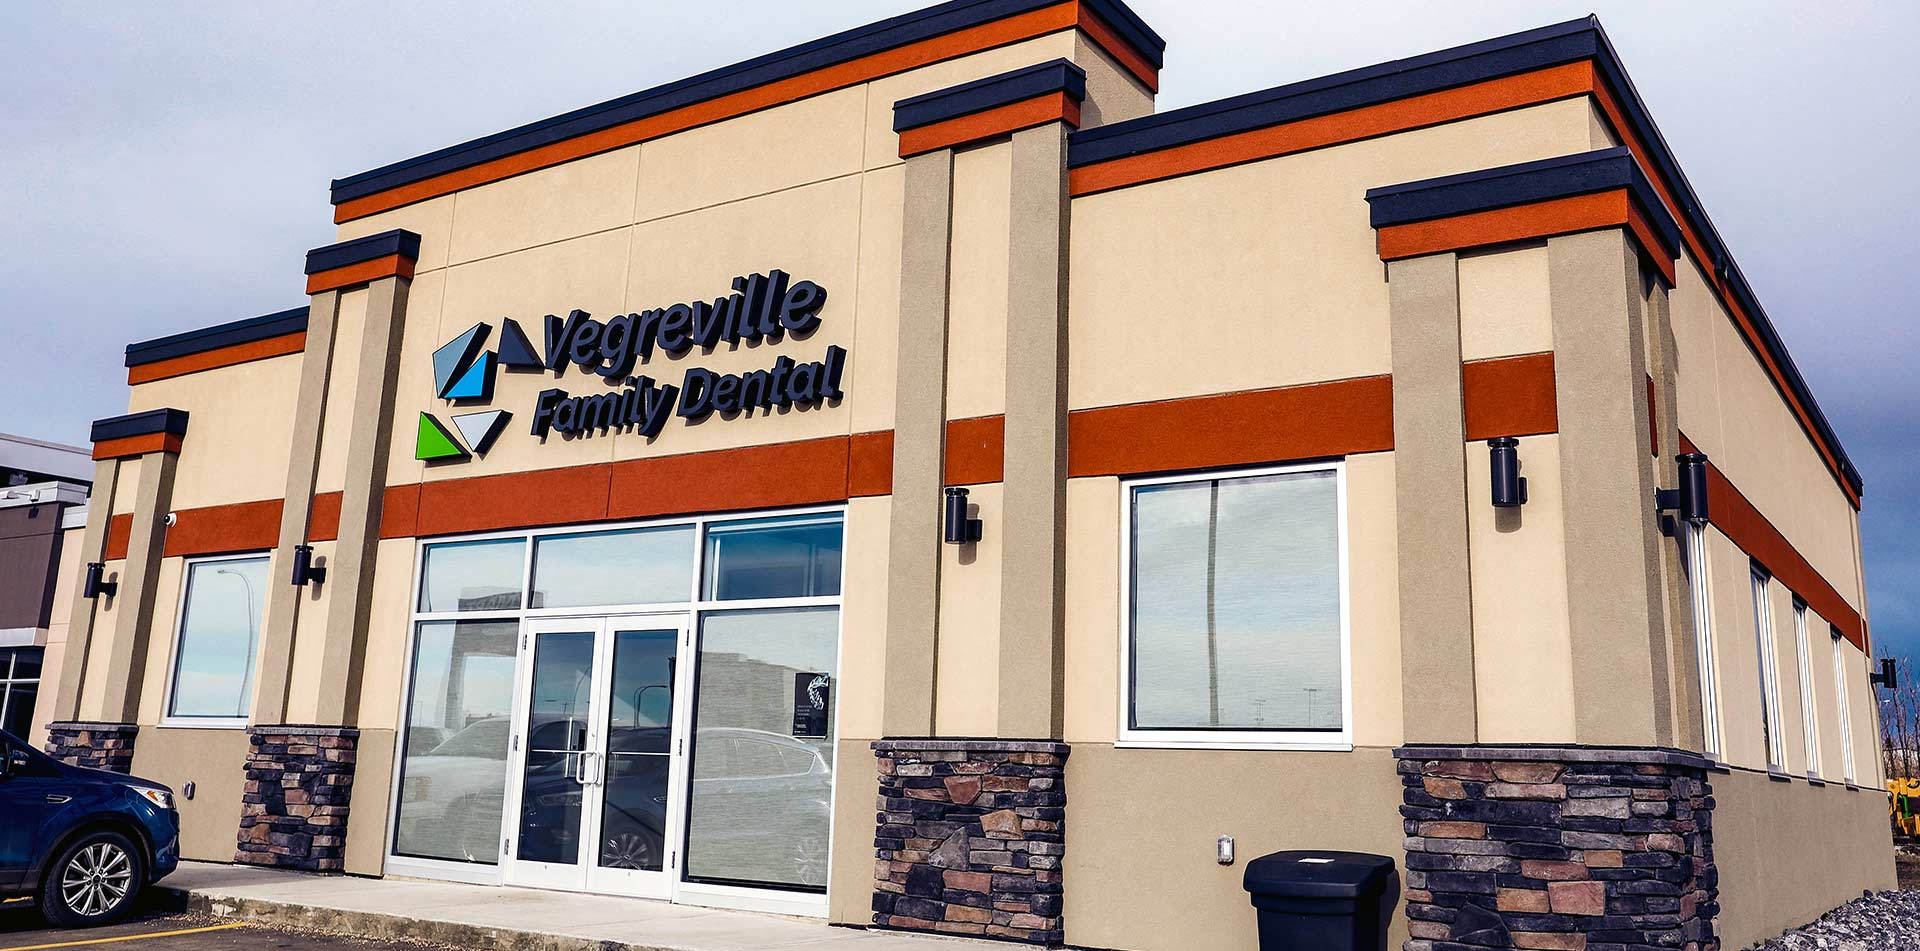 Vegreville Family Dental Exterior